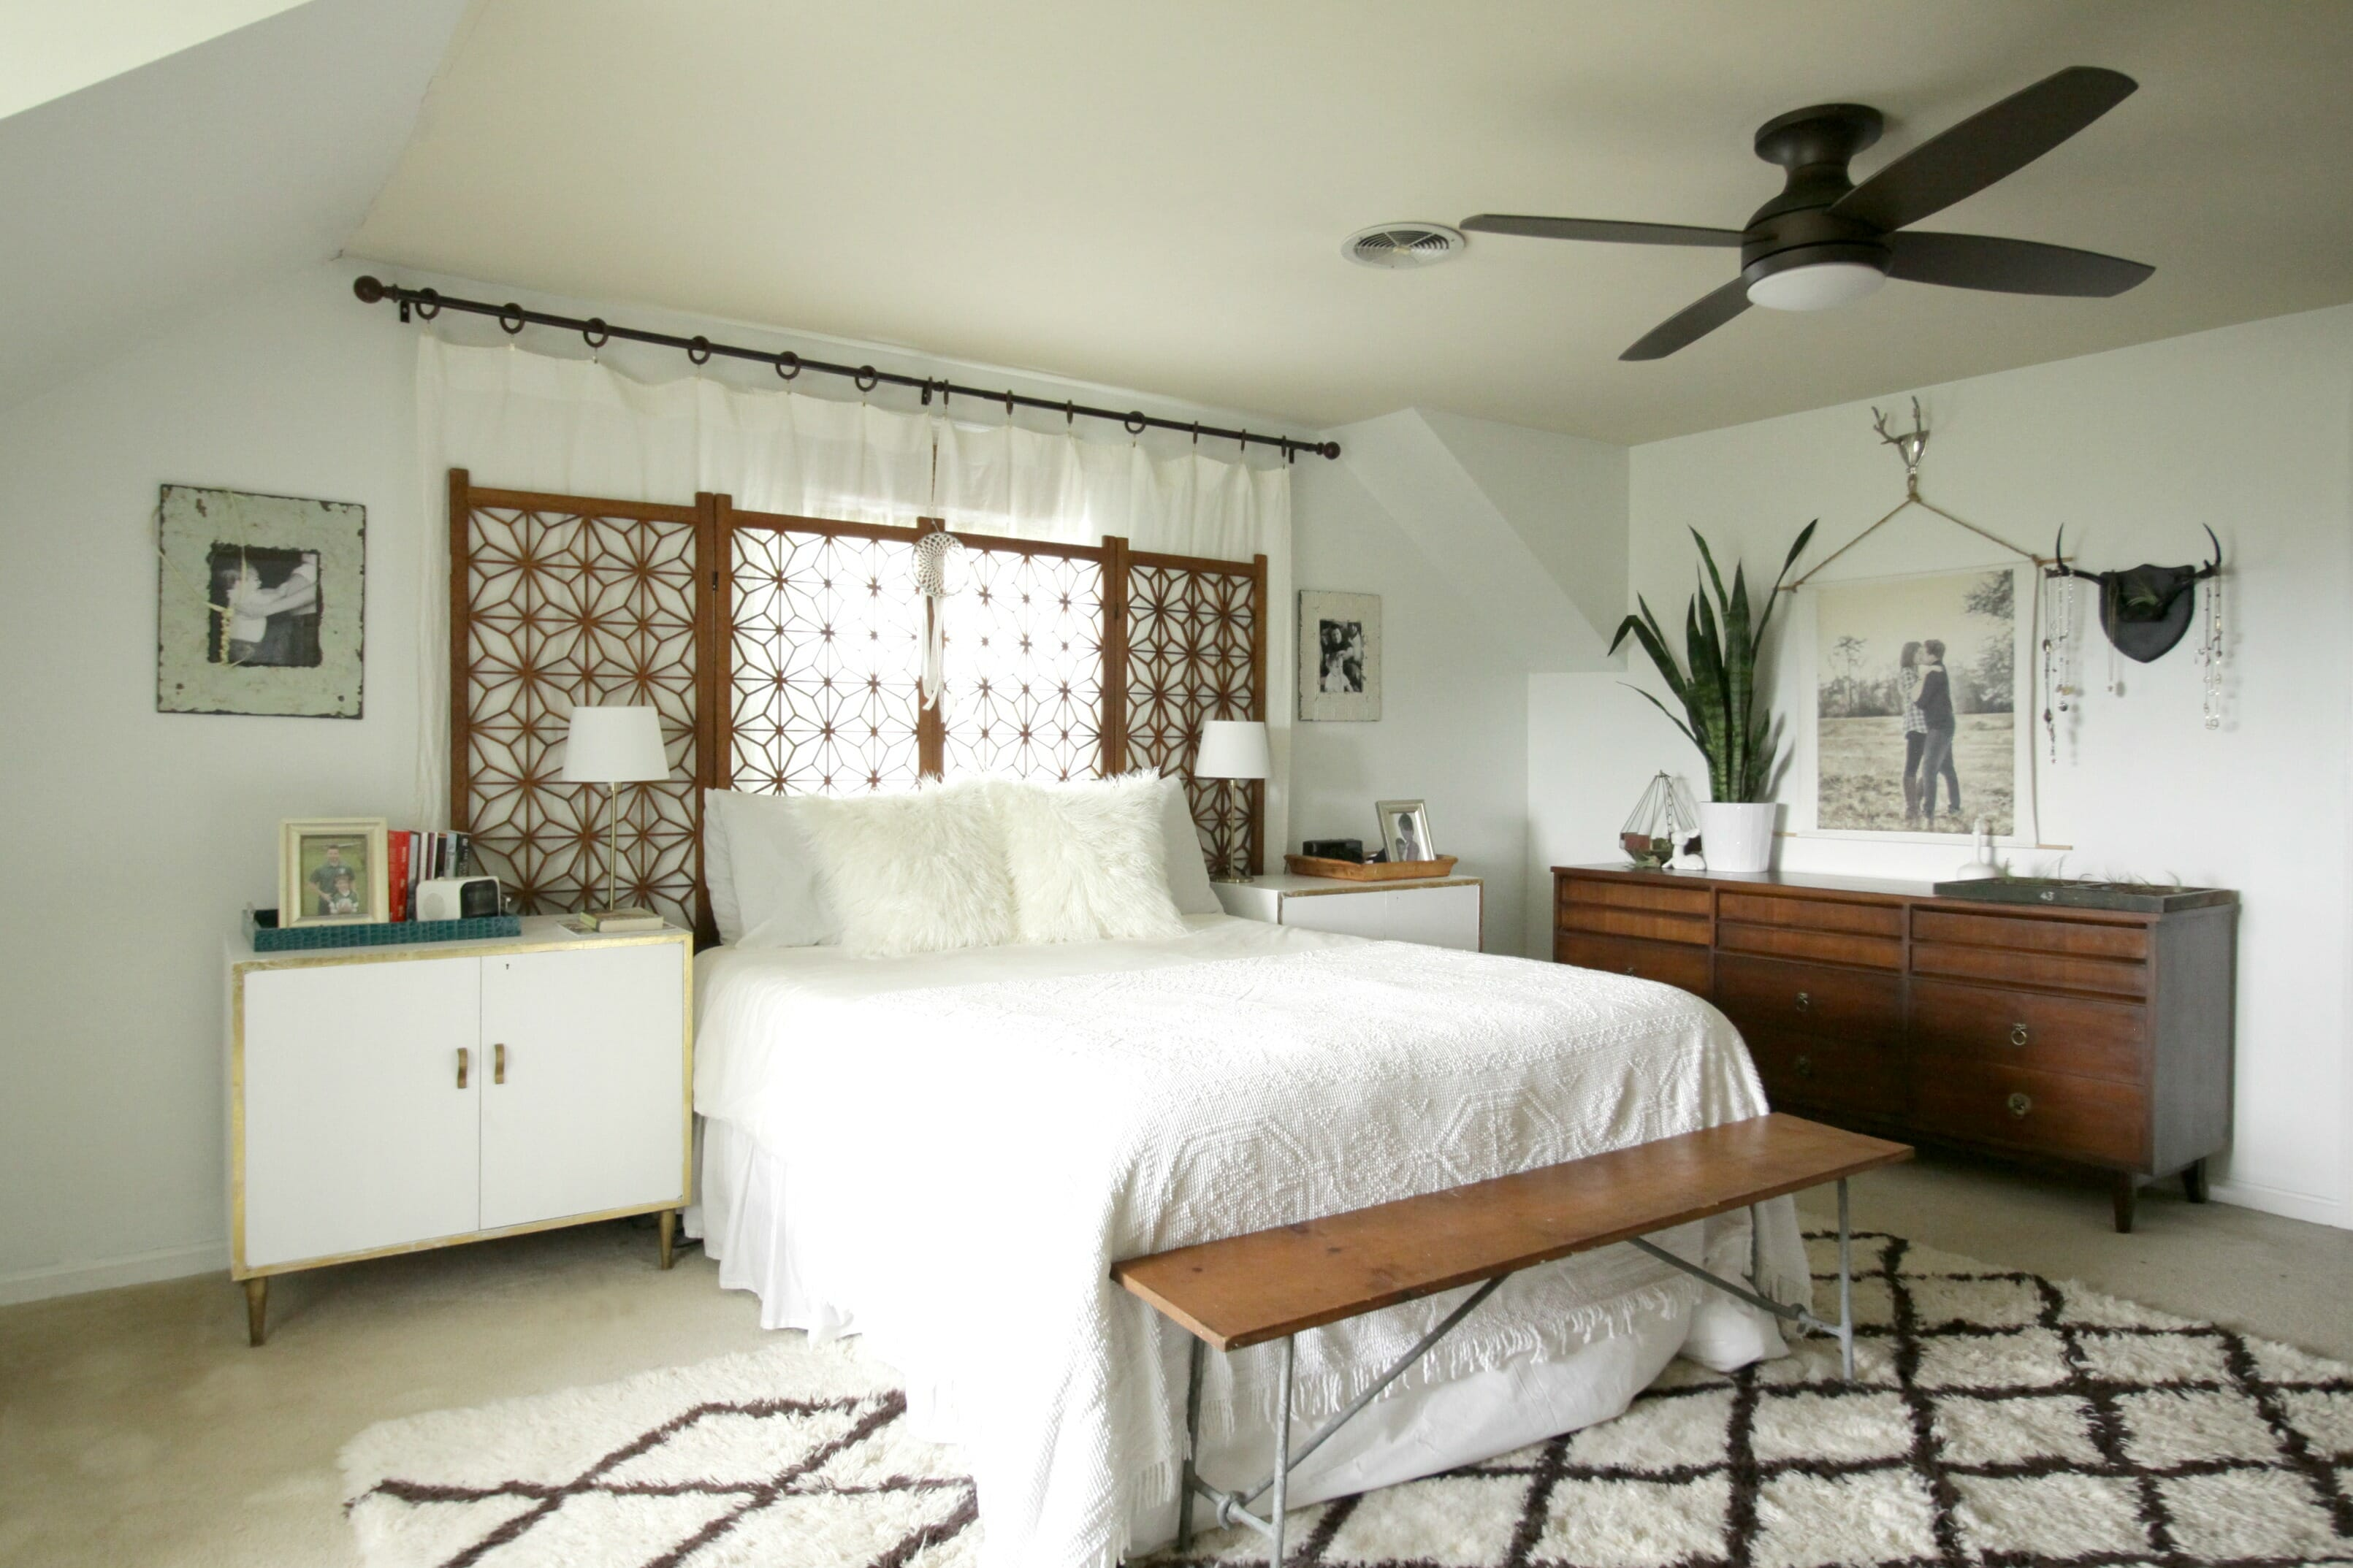 new ceiling fan in the master bedroom cassie bustamante 18413 | img 0038